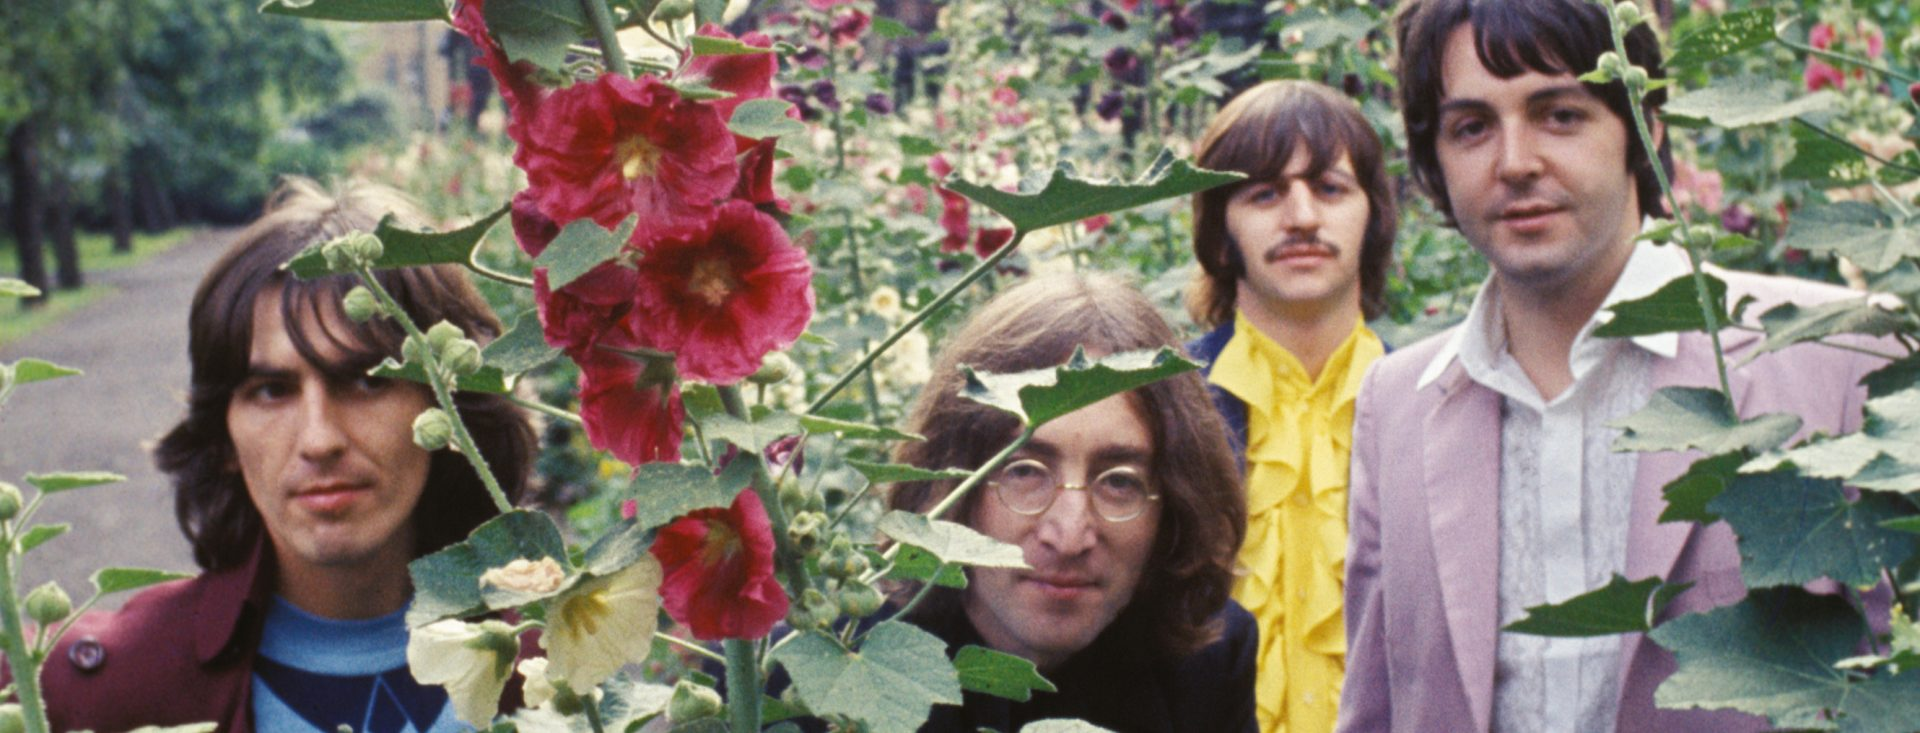 Experience The Beatles' White Album Like Never Before With